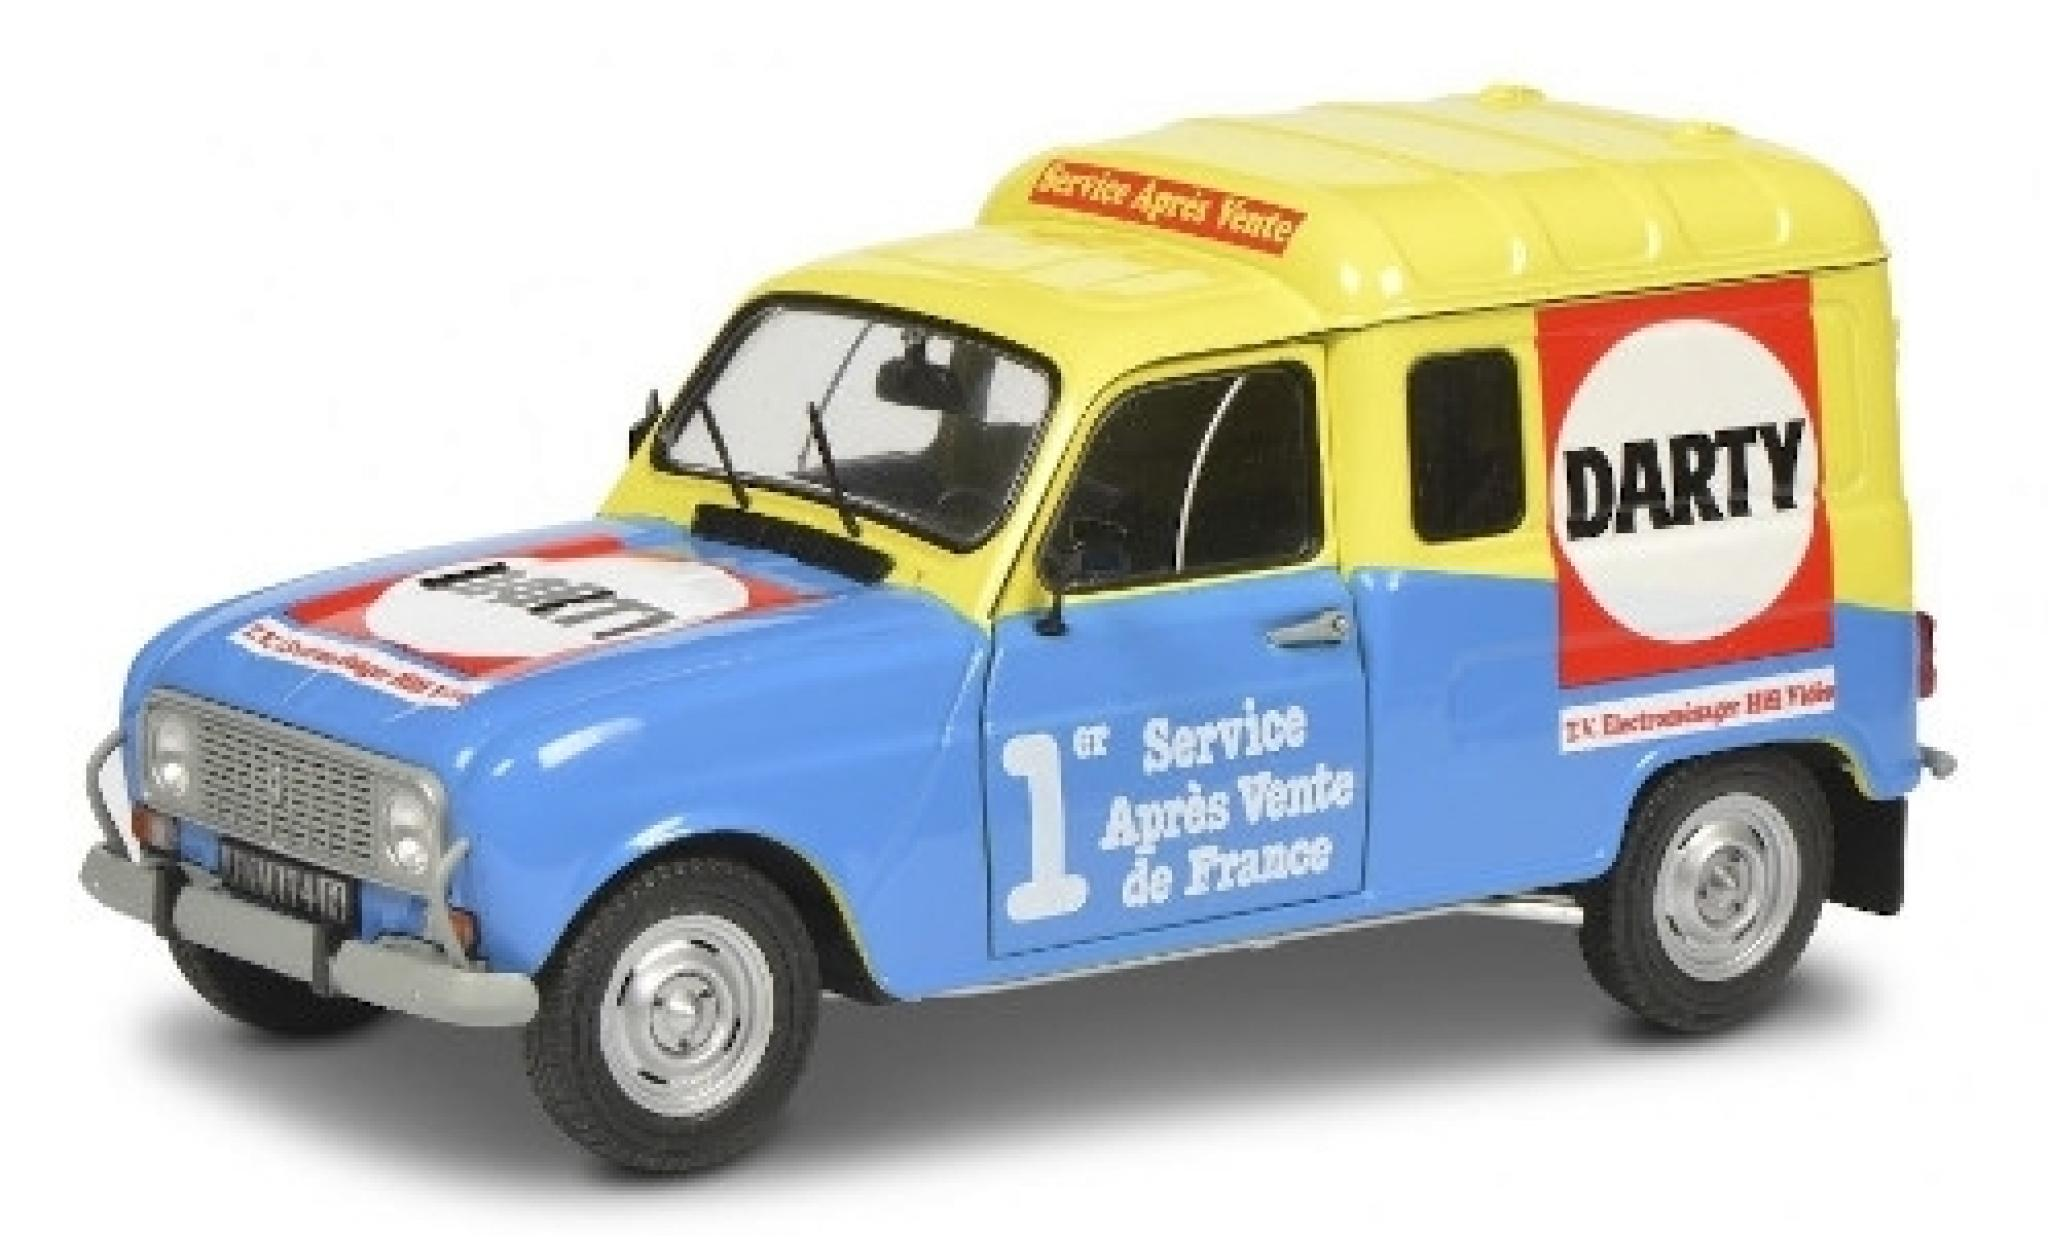 Renault 4 1/18 Solido R F Darty 1988